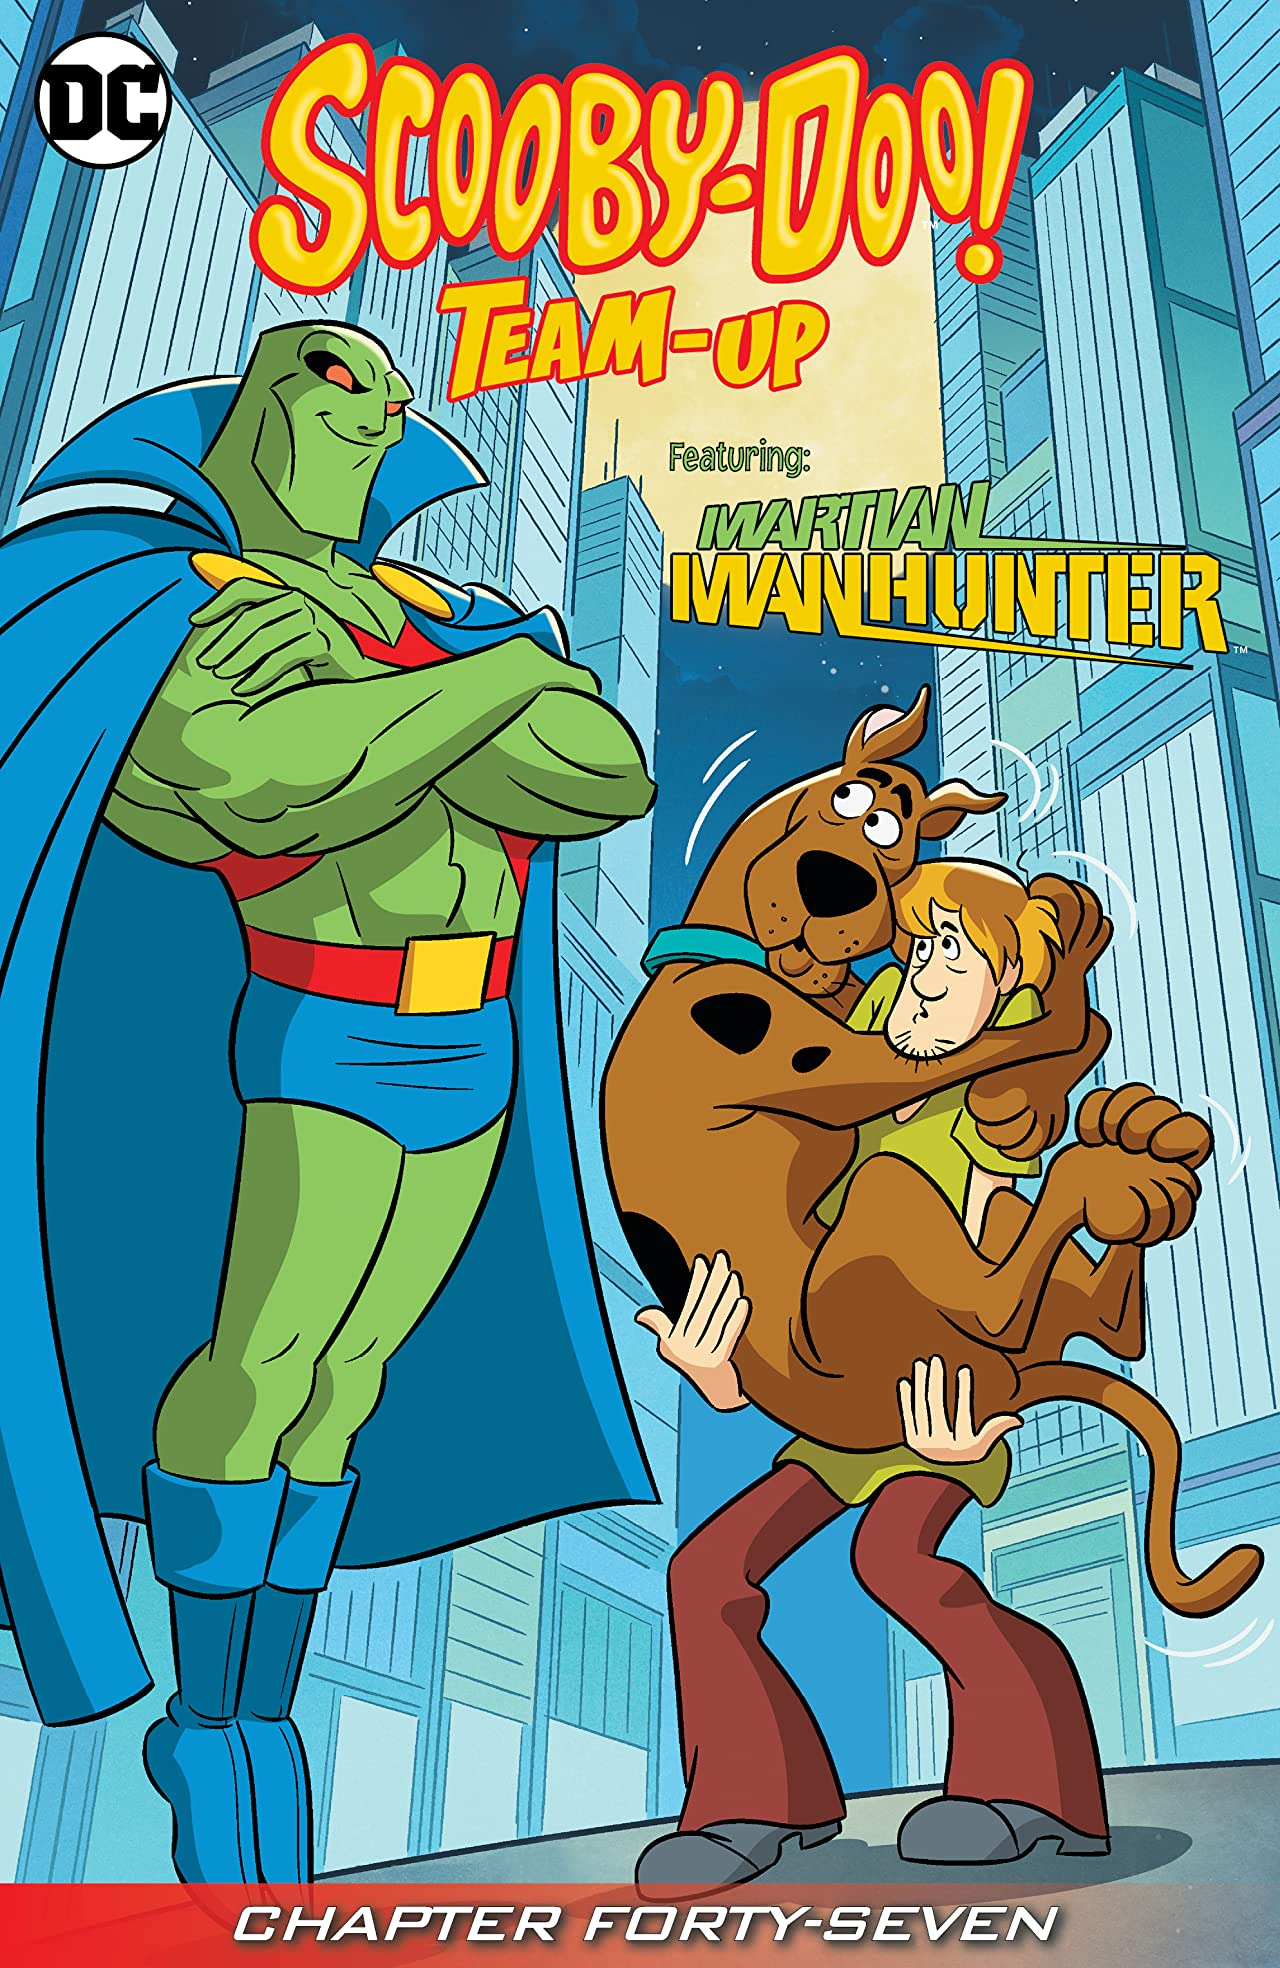 Scooby-Doo Team-Up (2013-) #47